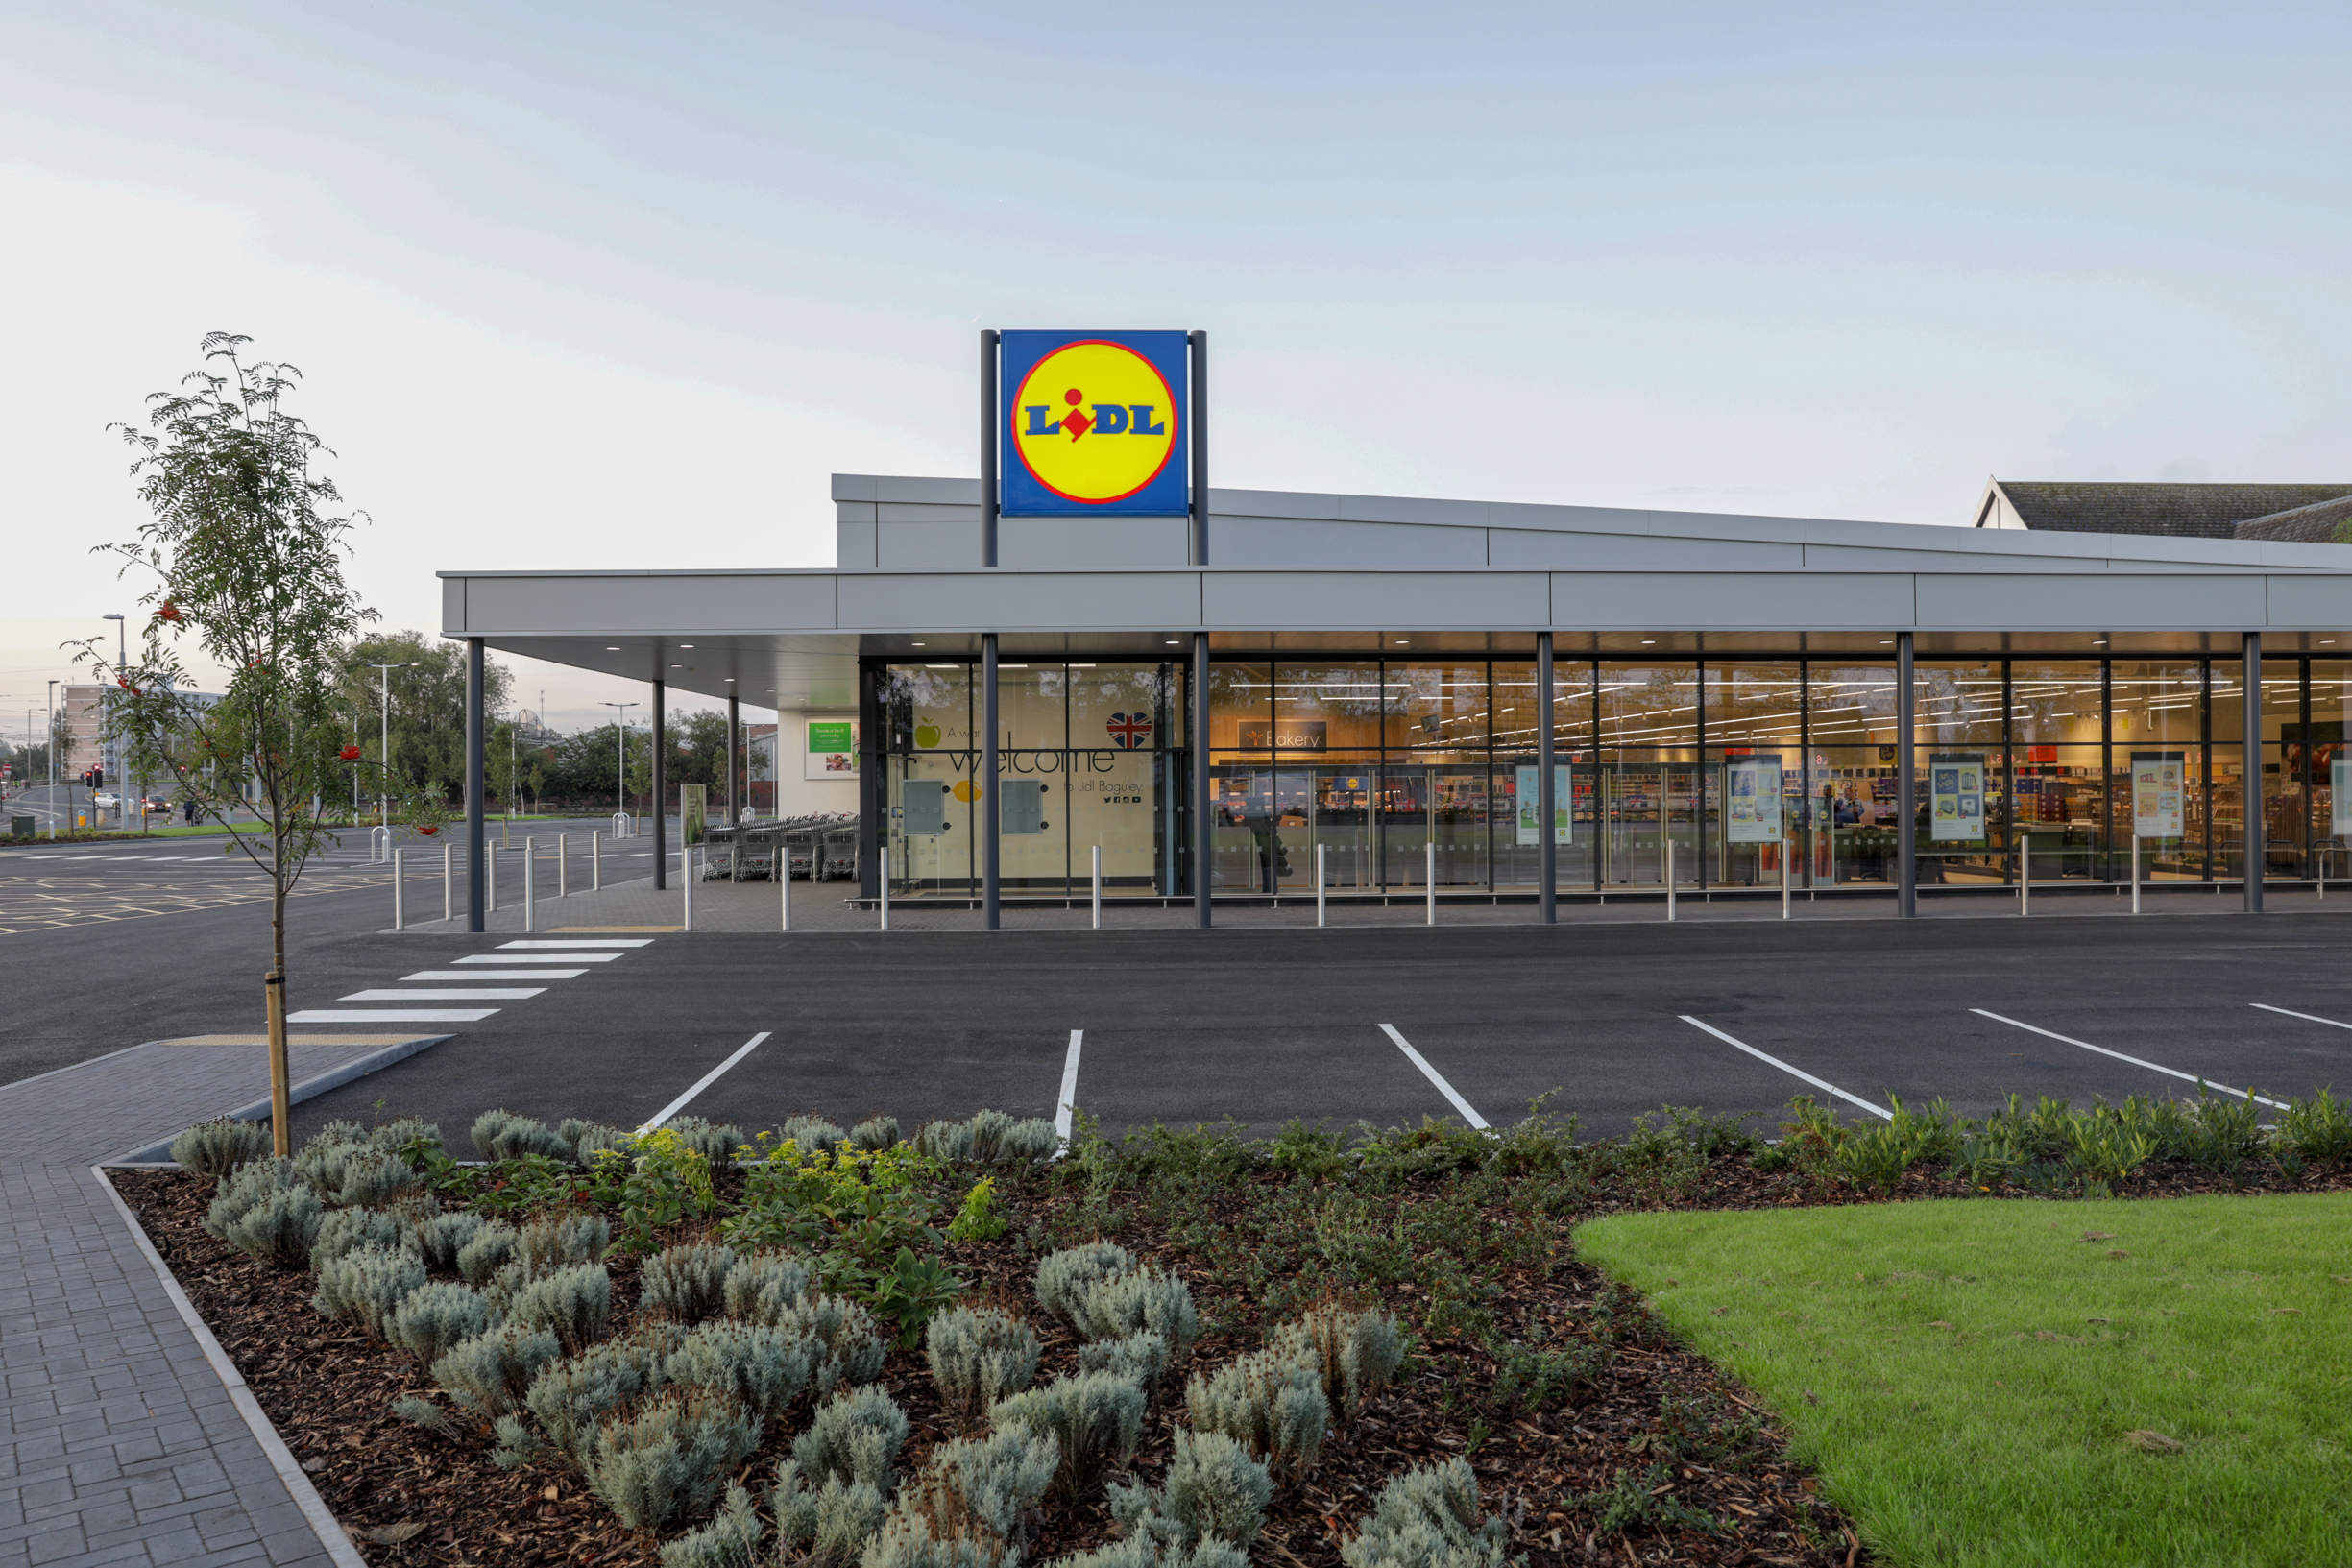 Lidl has had a bid to expand its booze offering at a new store rejected.